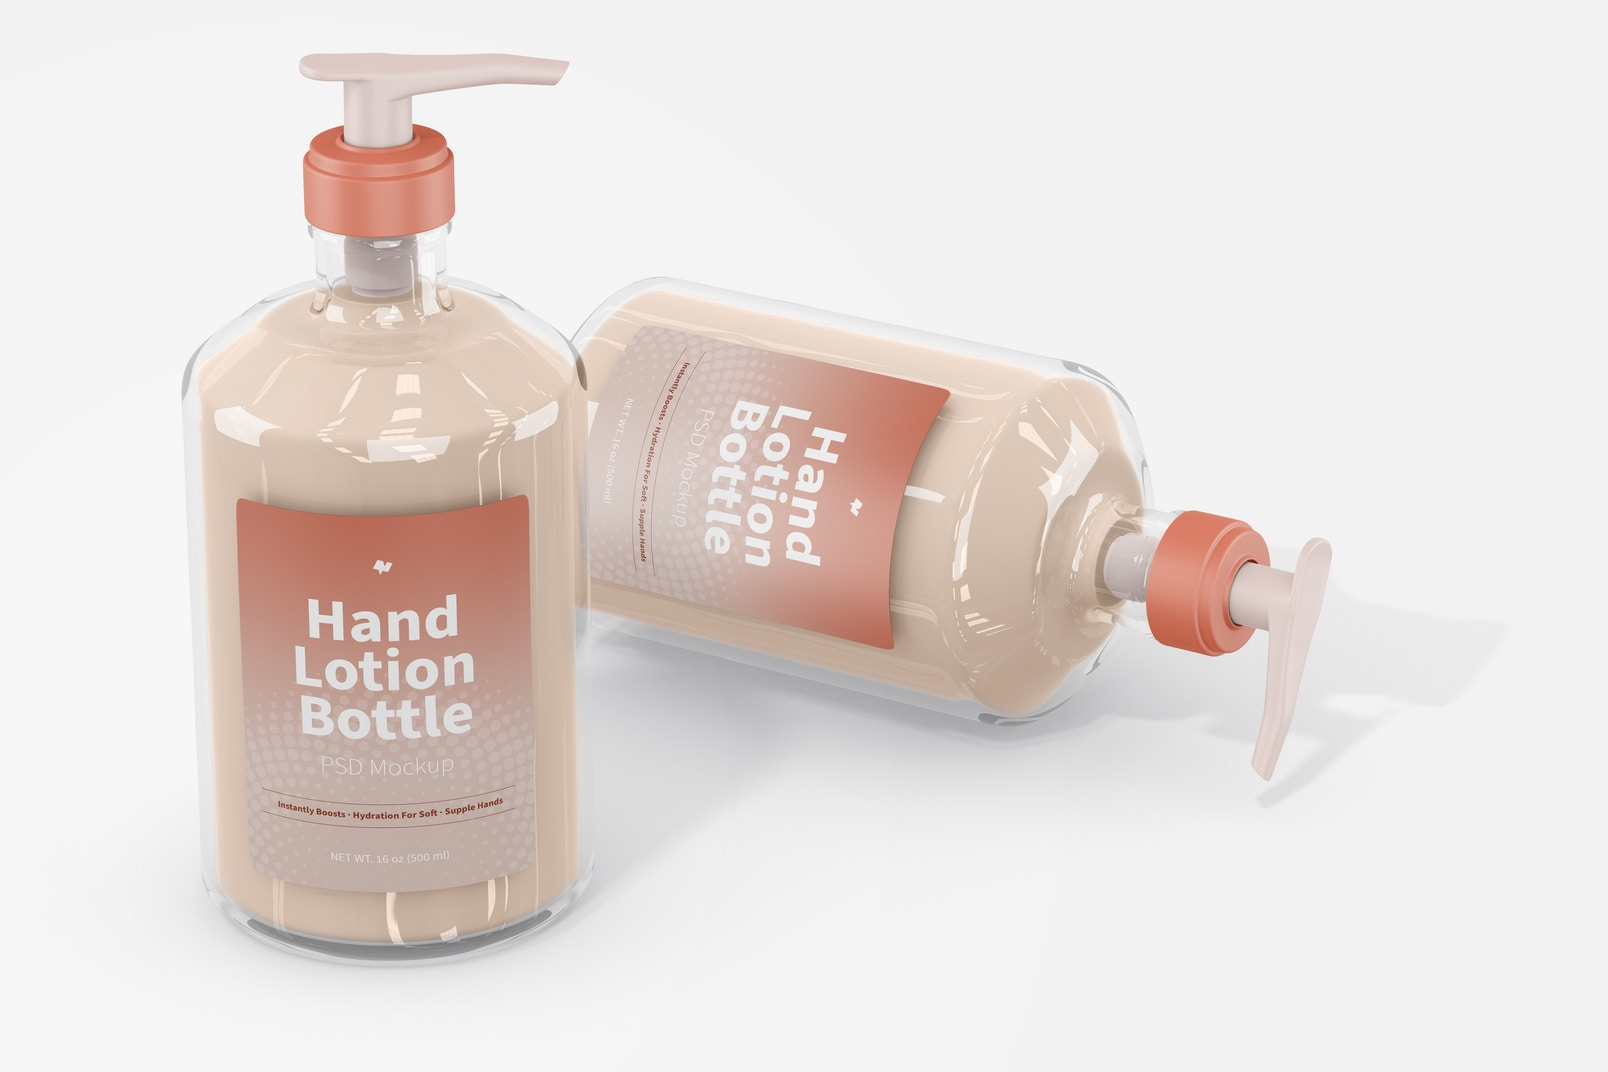 500 ml Hand Lotion Bottle Mockup, Standing and Dropped